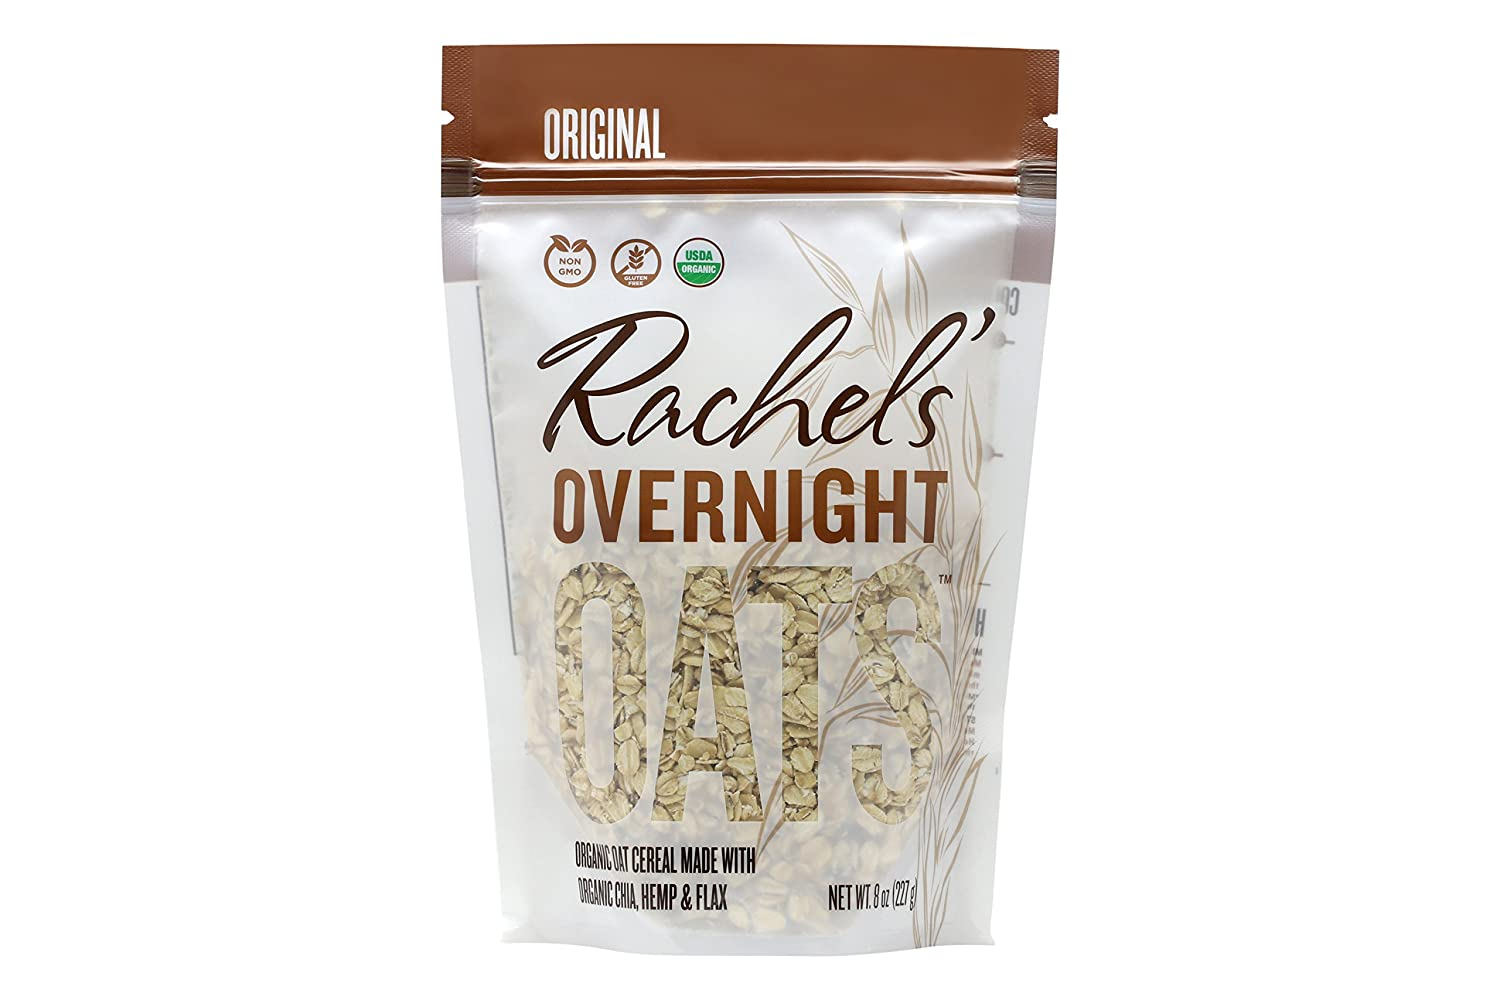 Avena nocturna de Rachel: Amazon.com: Grocery & Gourmet Food